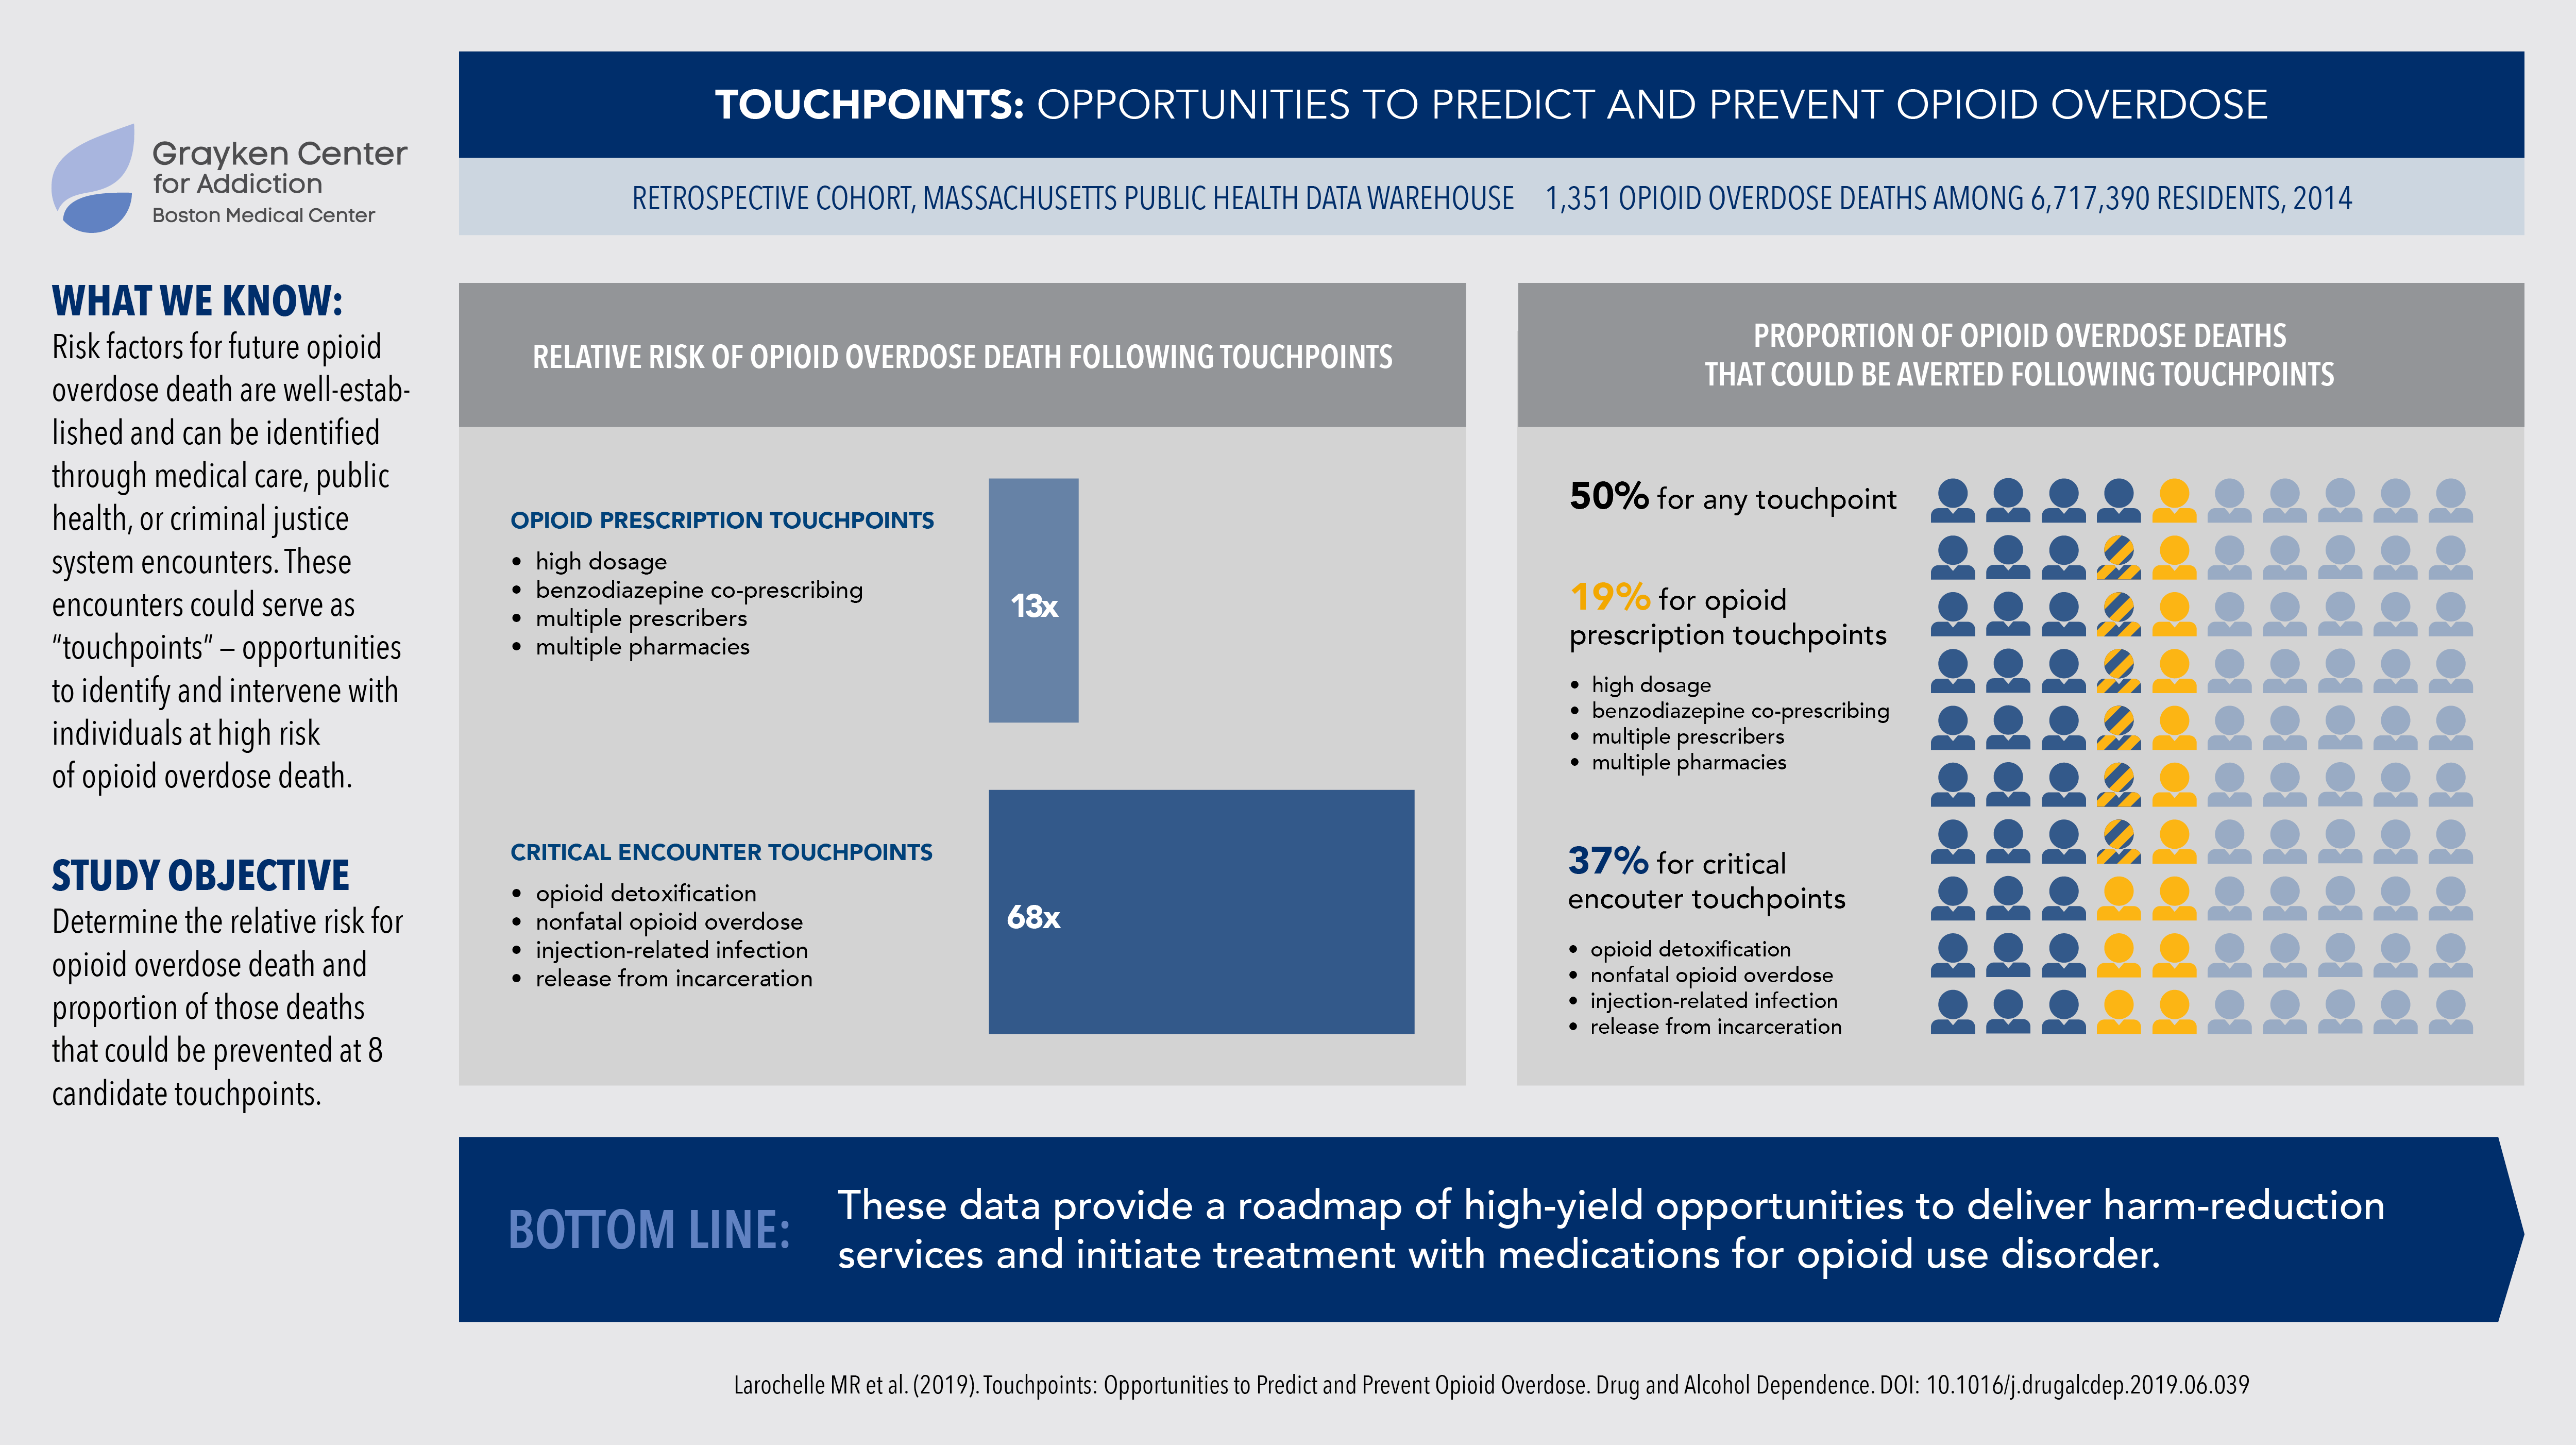 GRAPHIC: Opportunities to Predict and Prevent Overdose